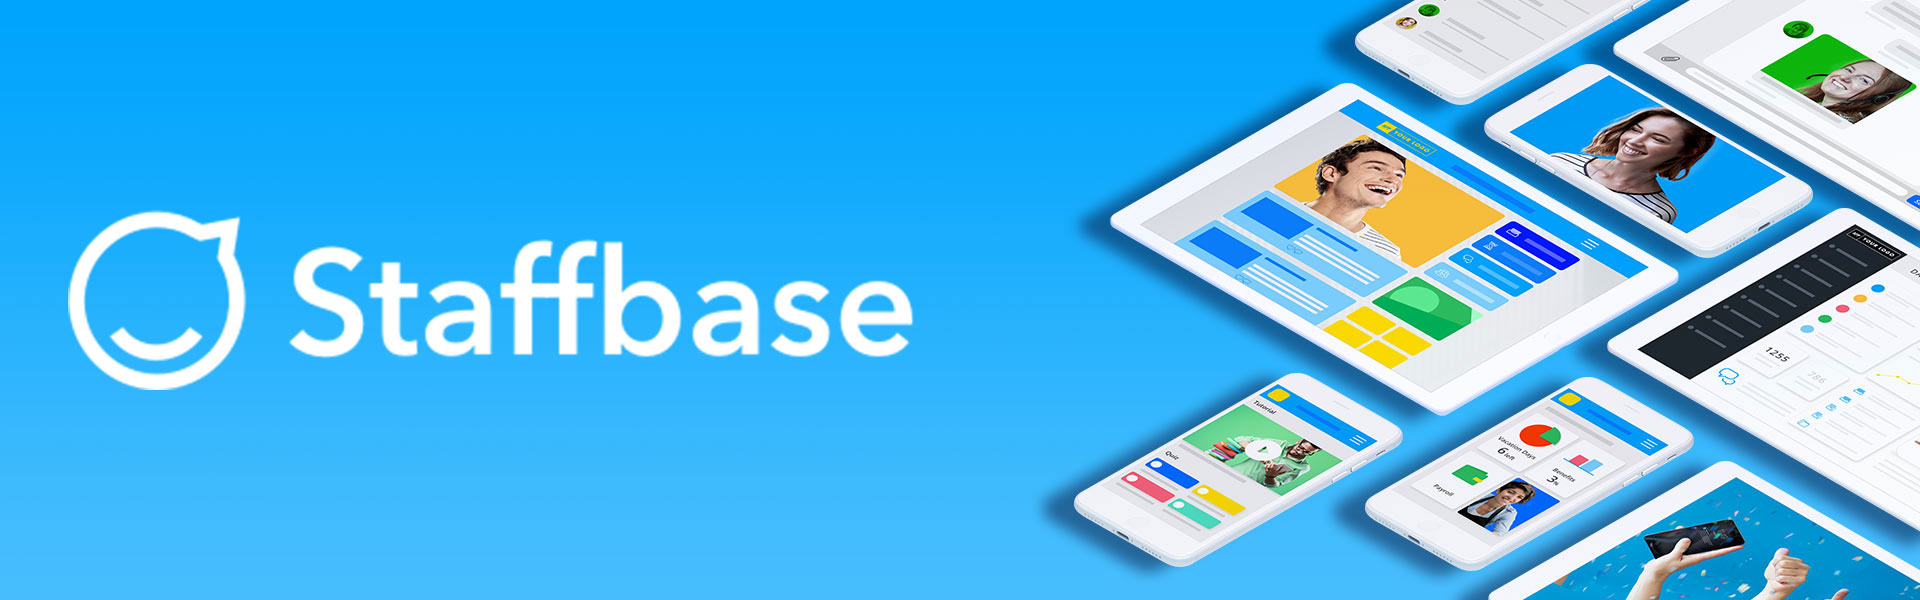 Staffbase Use Cases LINXYS GmbH